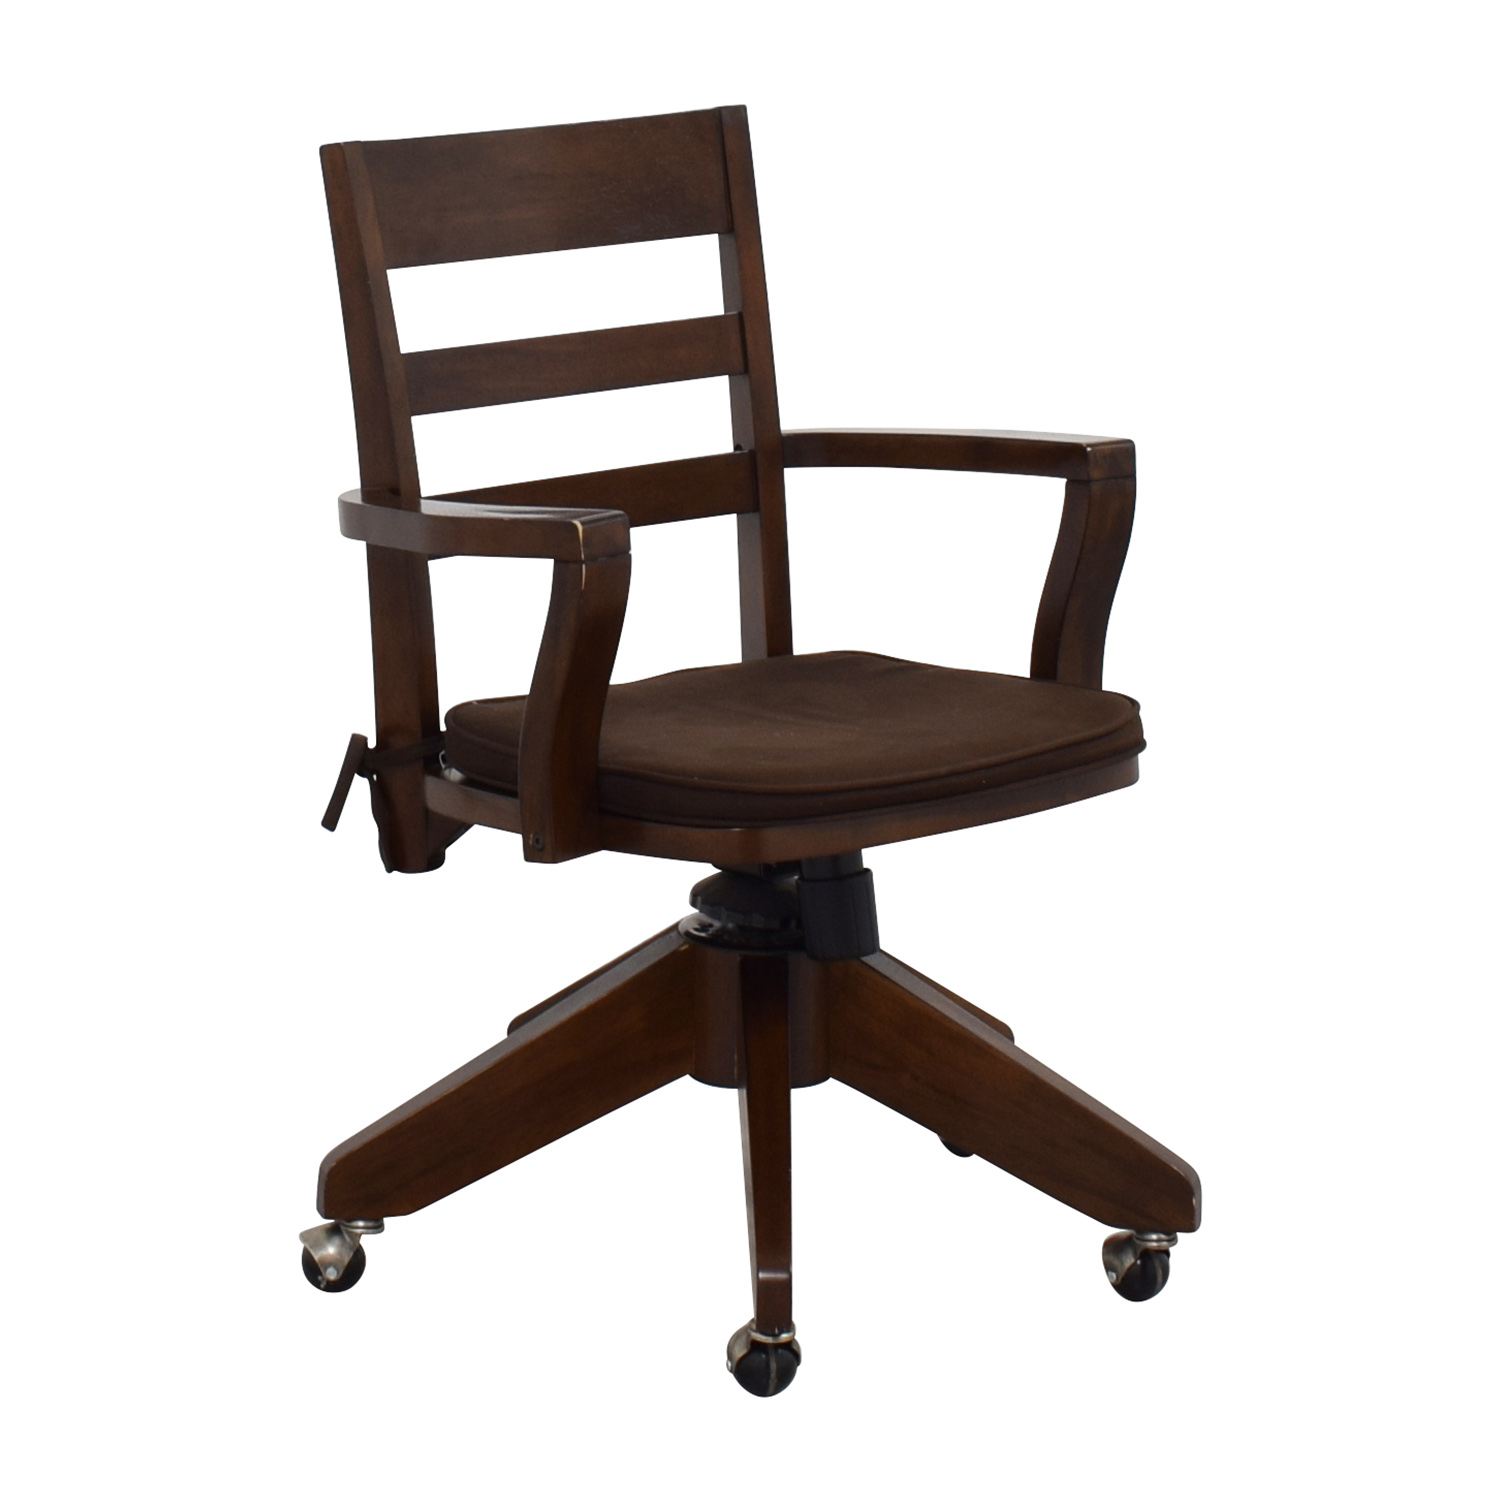 Pottery Barn Easy Chairs: Pottery Barn Pottery Barn Wooden Swivel Desk